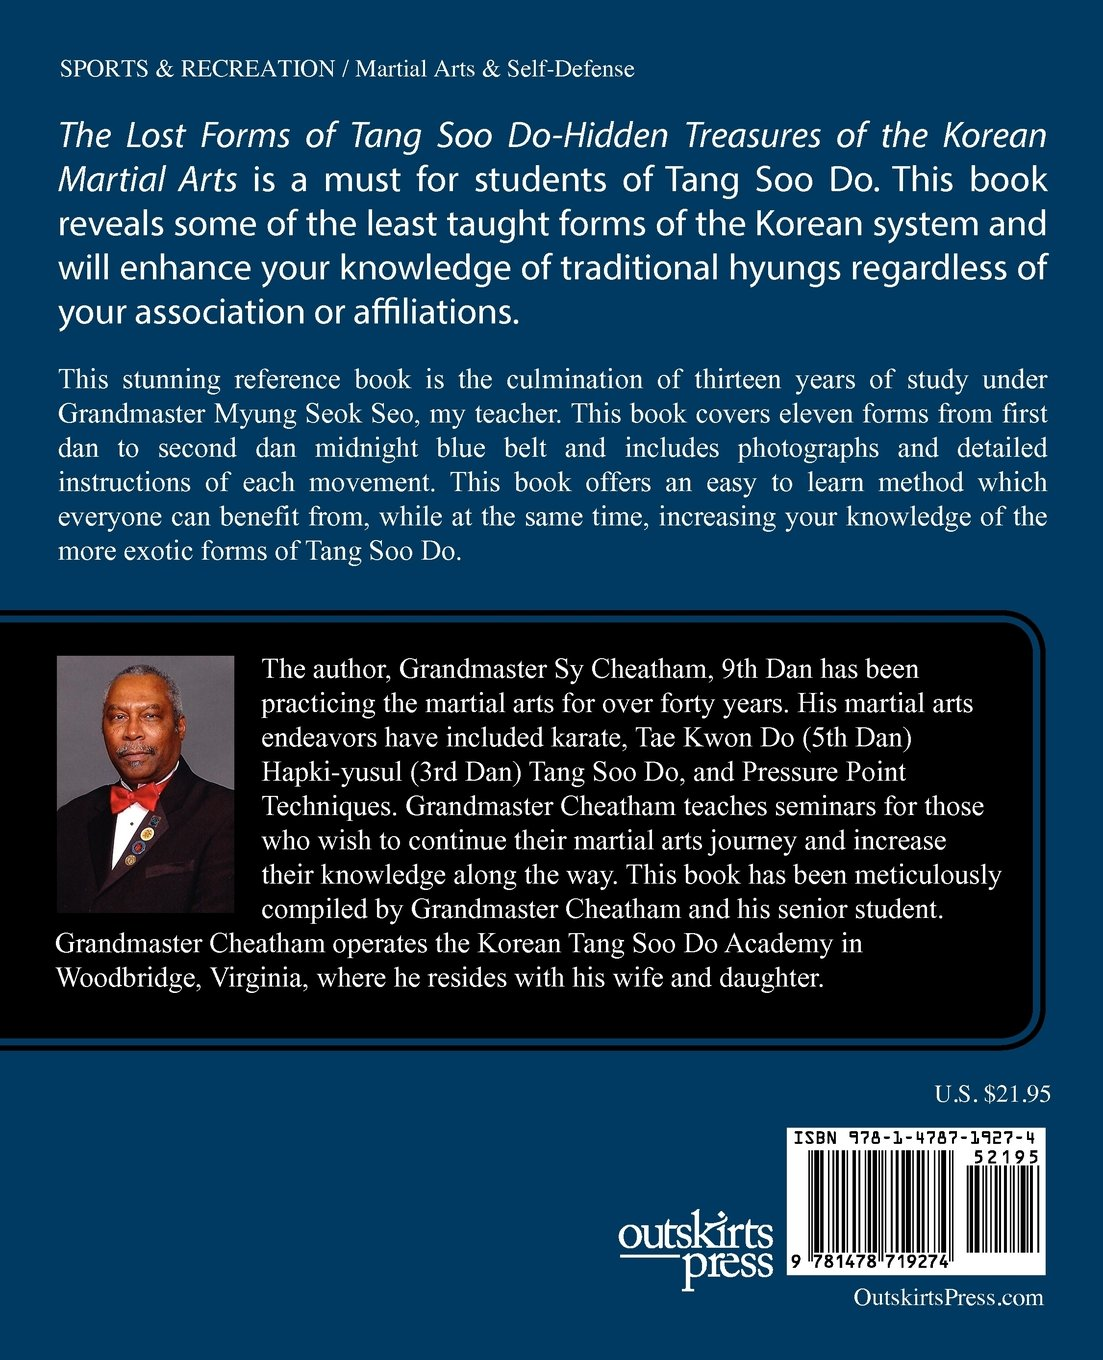 The lost forms of tang soo do hidden treasures of the korean the lost forms of tang soo do hidden treasures of the korean martial arts grandmaster sy cheatham 9781478719274 amazon books fandeluxe Choice Image